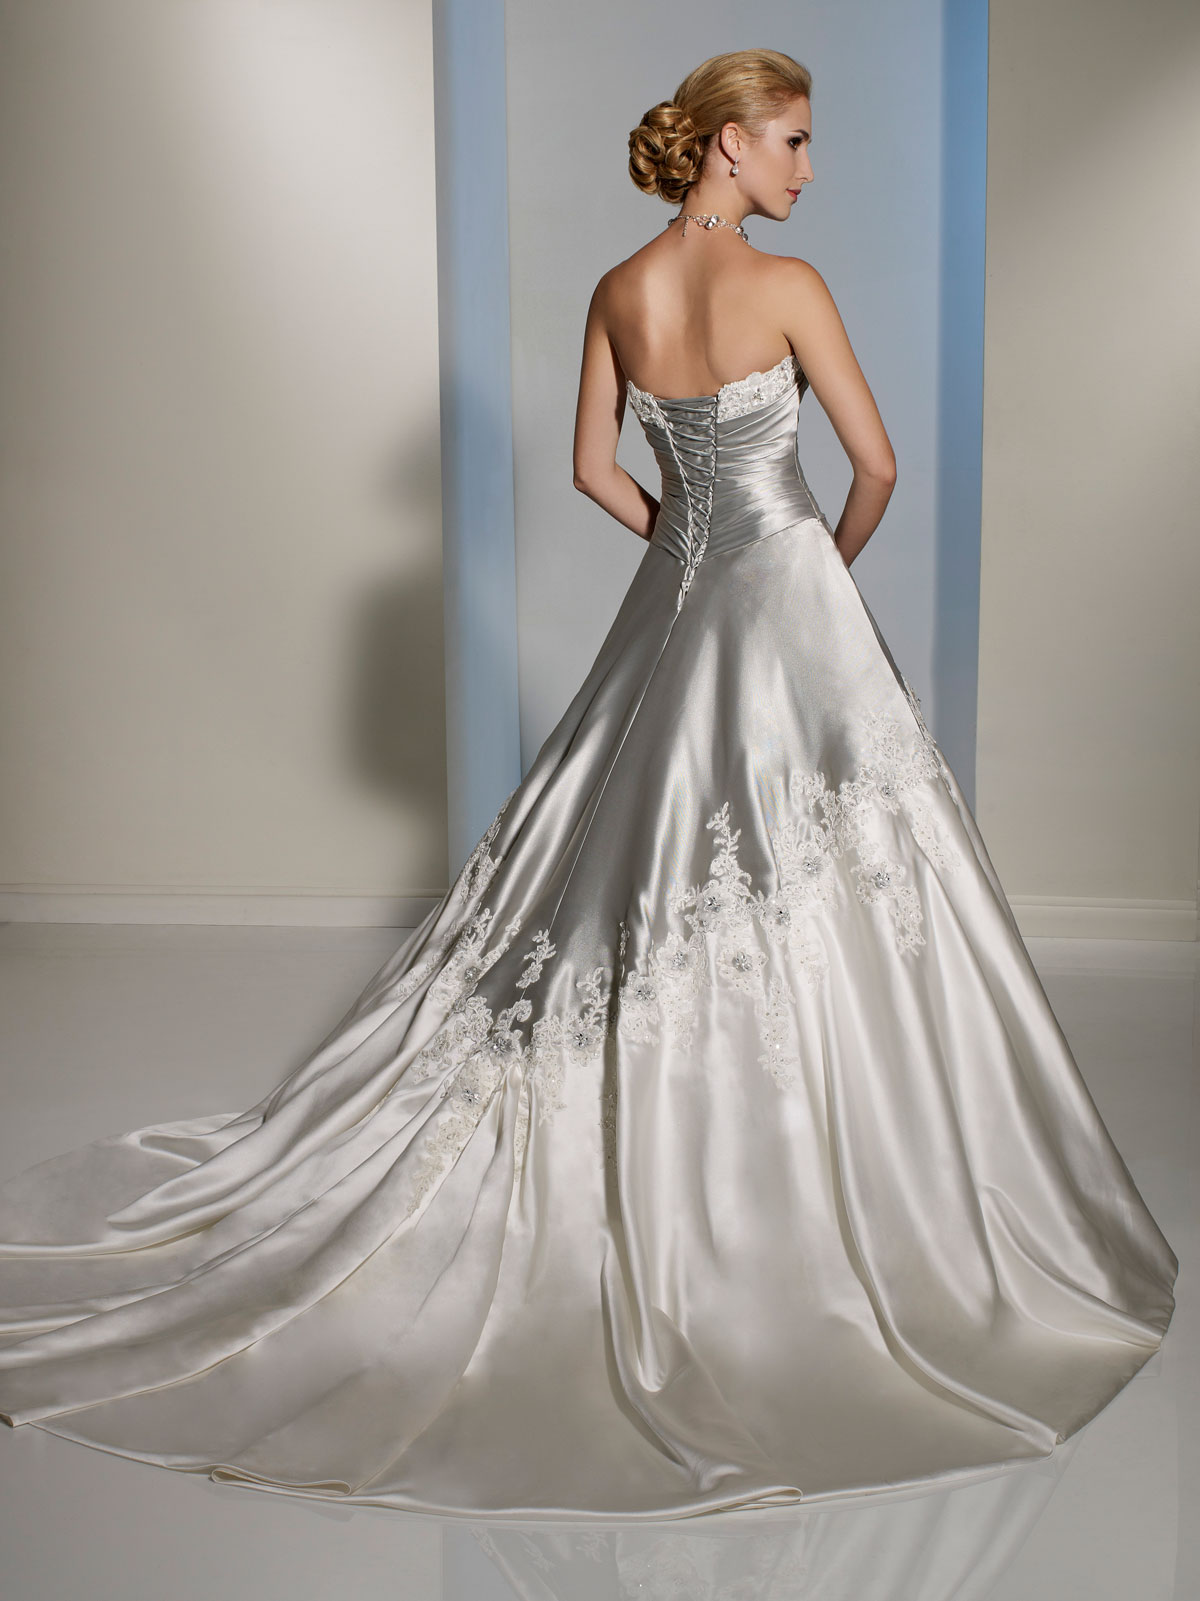 Silver and white draped bodice wedding dress.